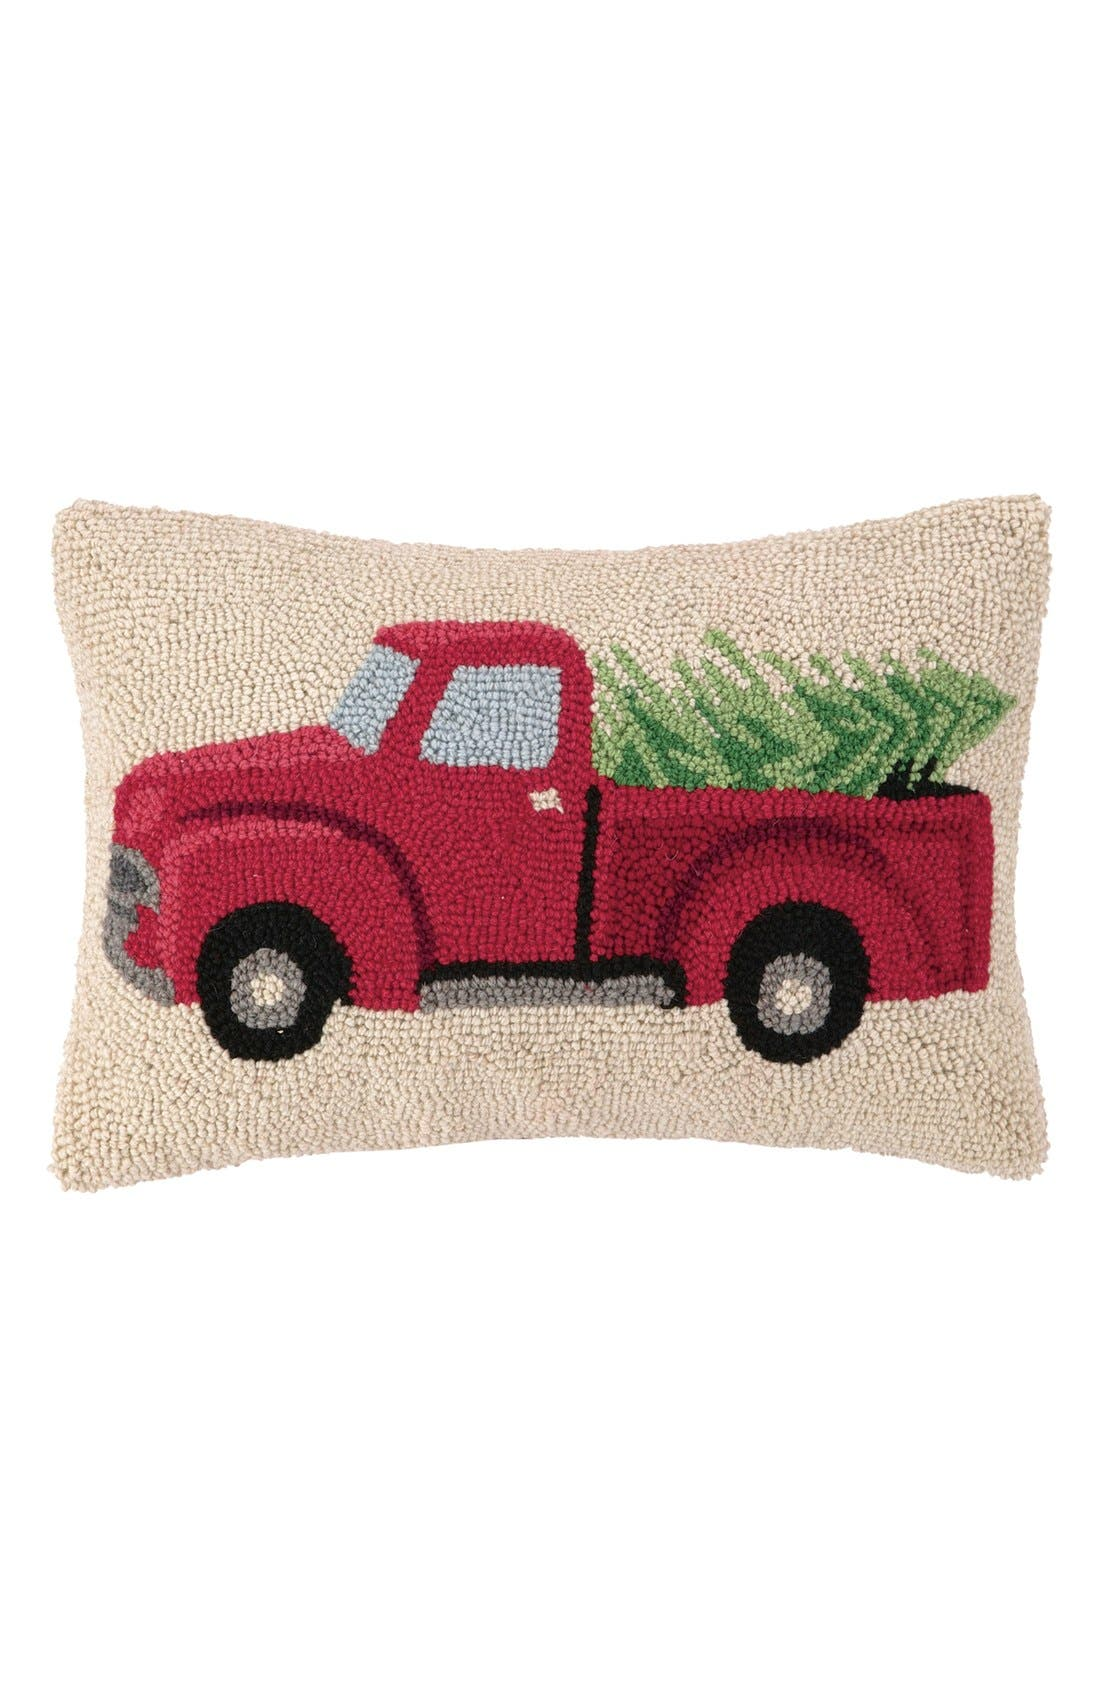 Main Image - Peking Handicraft 'Tree Truck' Pillow